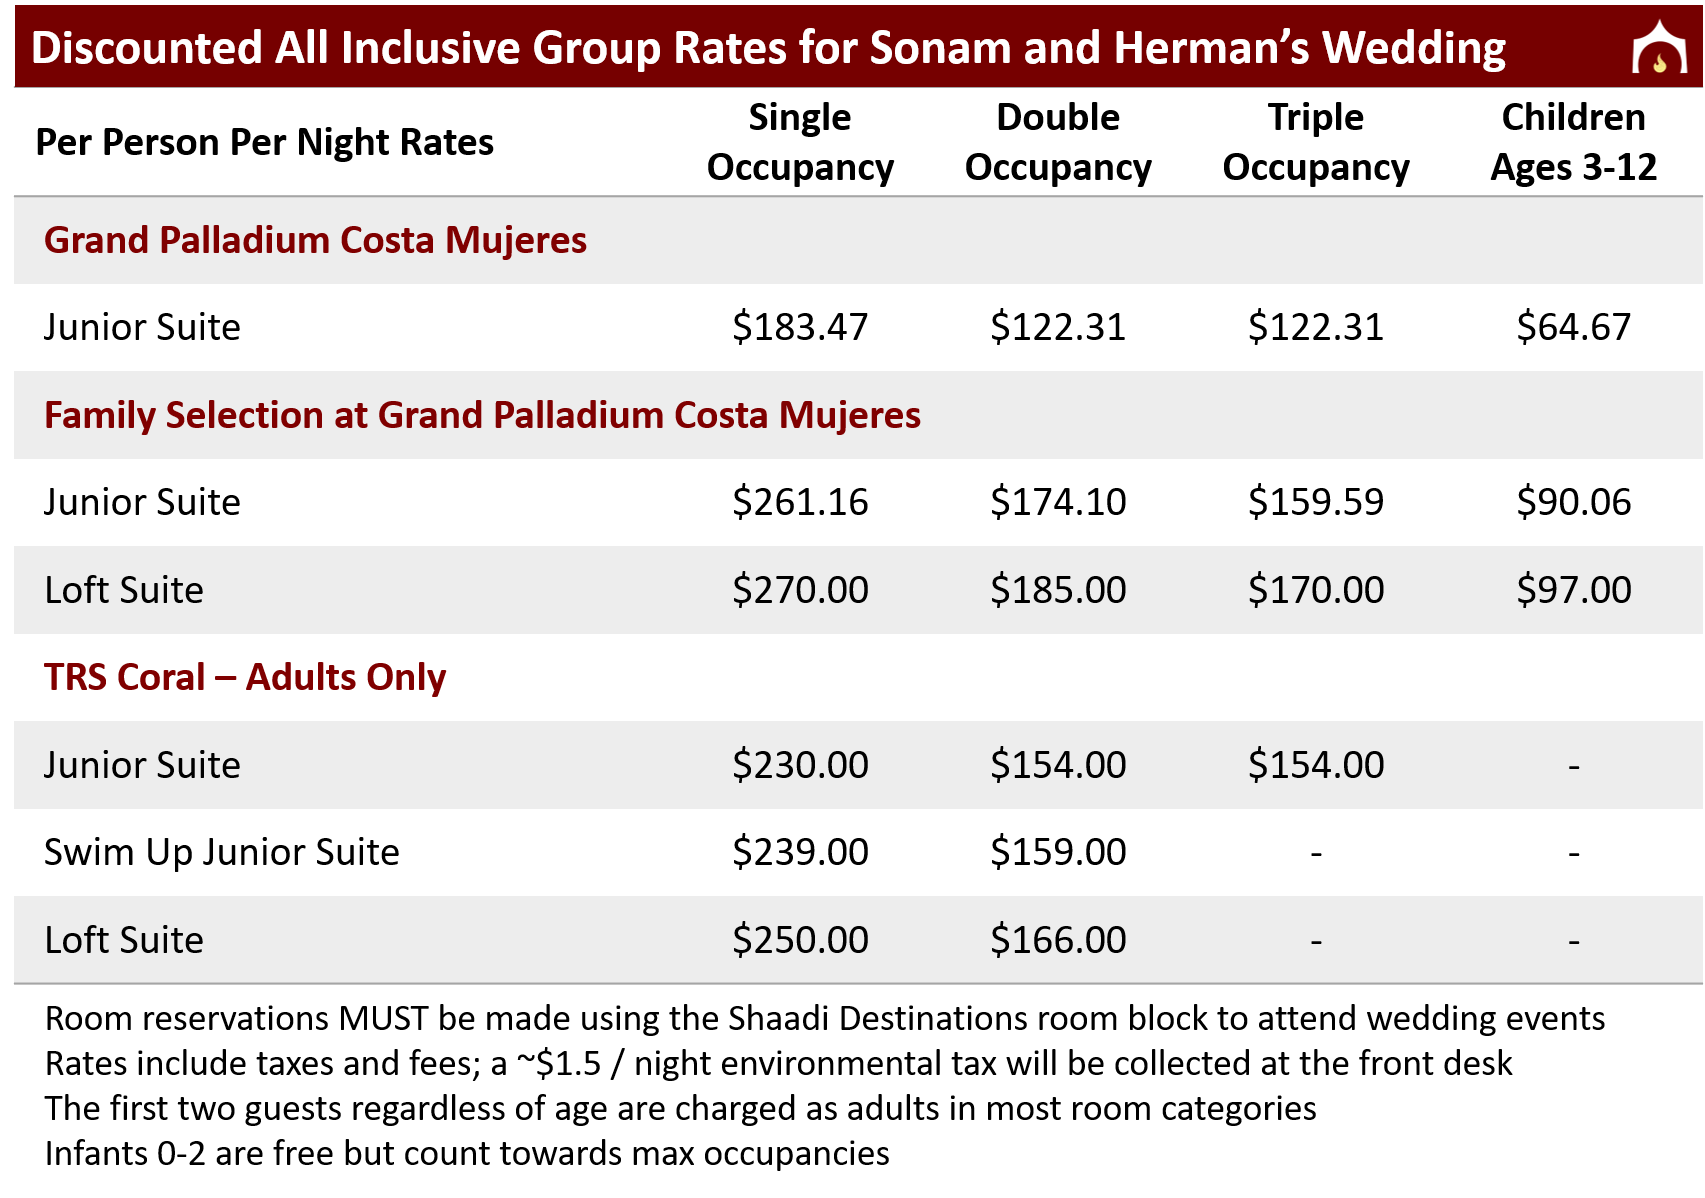 Sonam and Herman's Wedding Discounted Group Rates.png